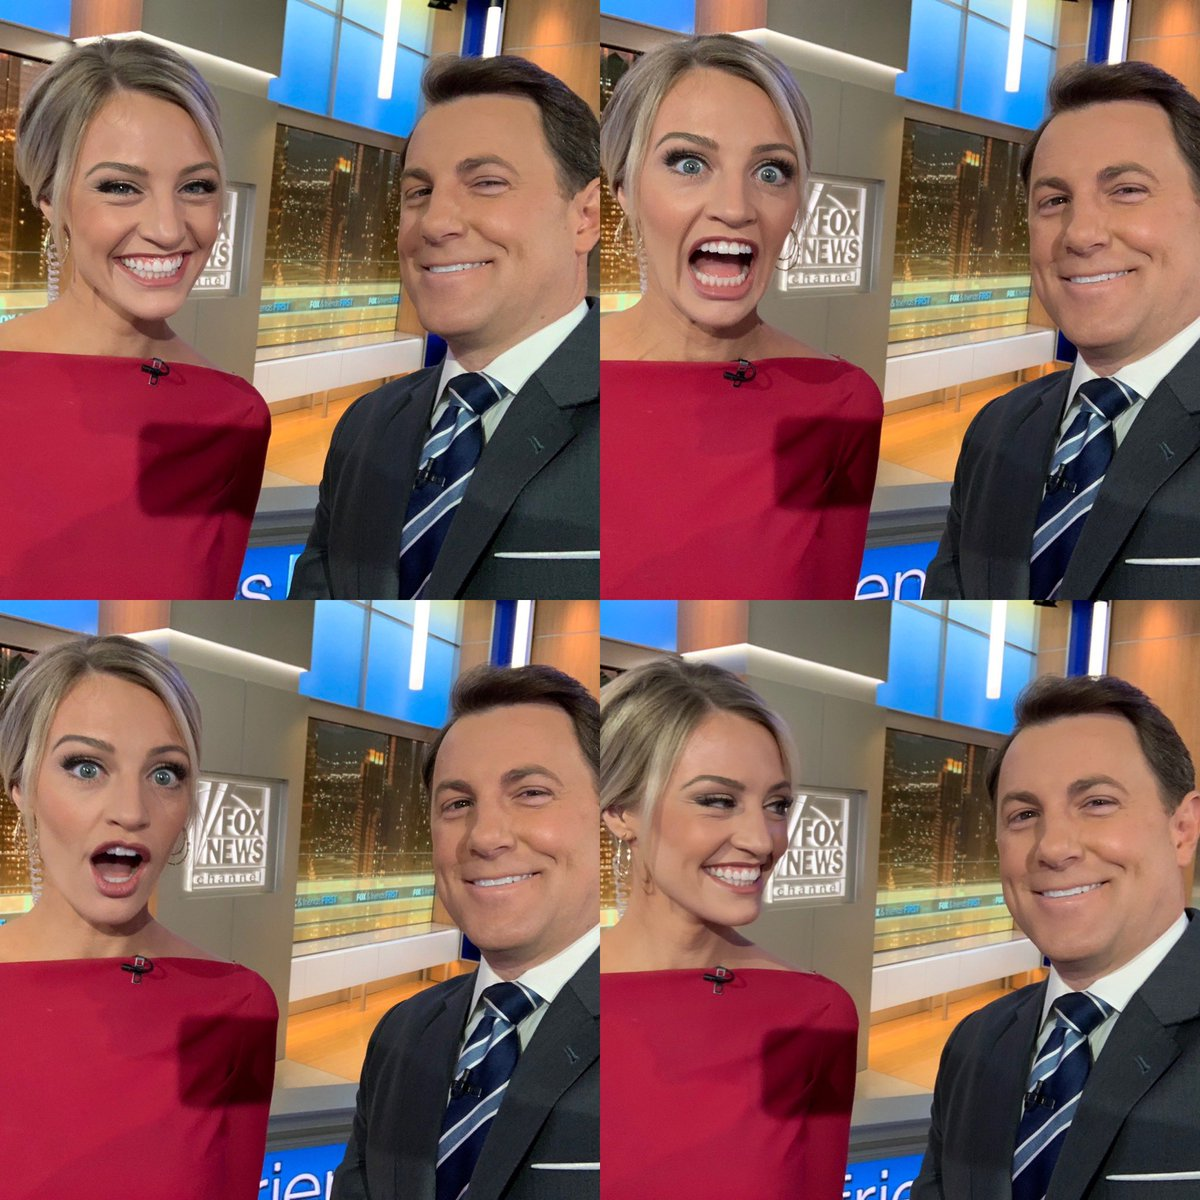 The many faces of @foxfriendsfirst this morning. Get ready for a complex and multi-faceted hour. @carleyshimkus